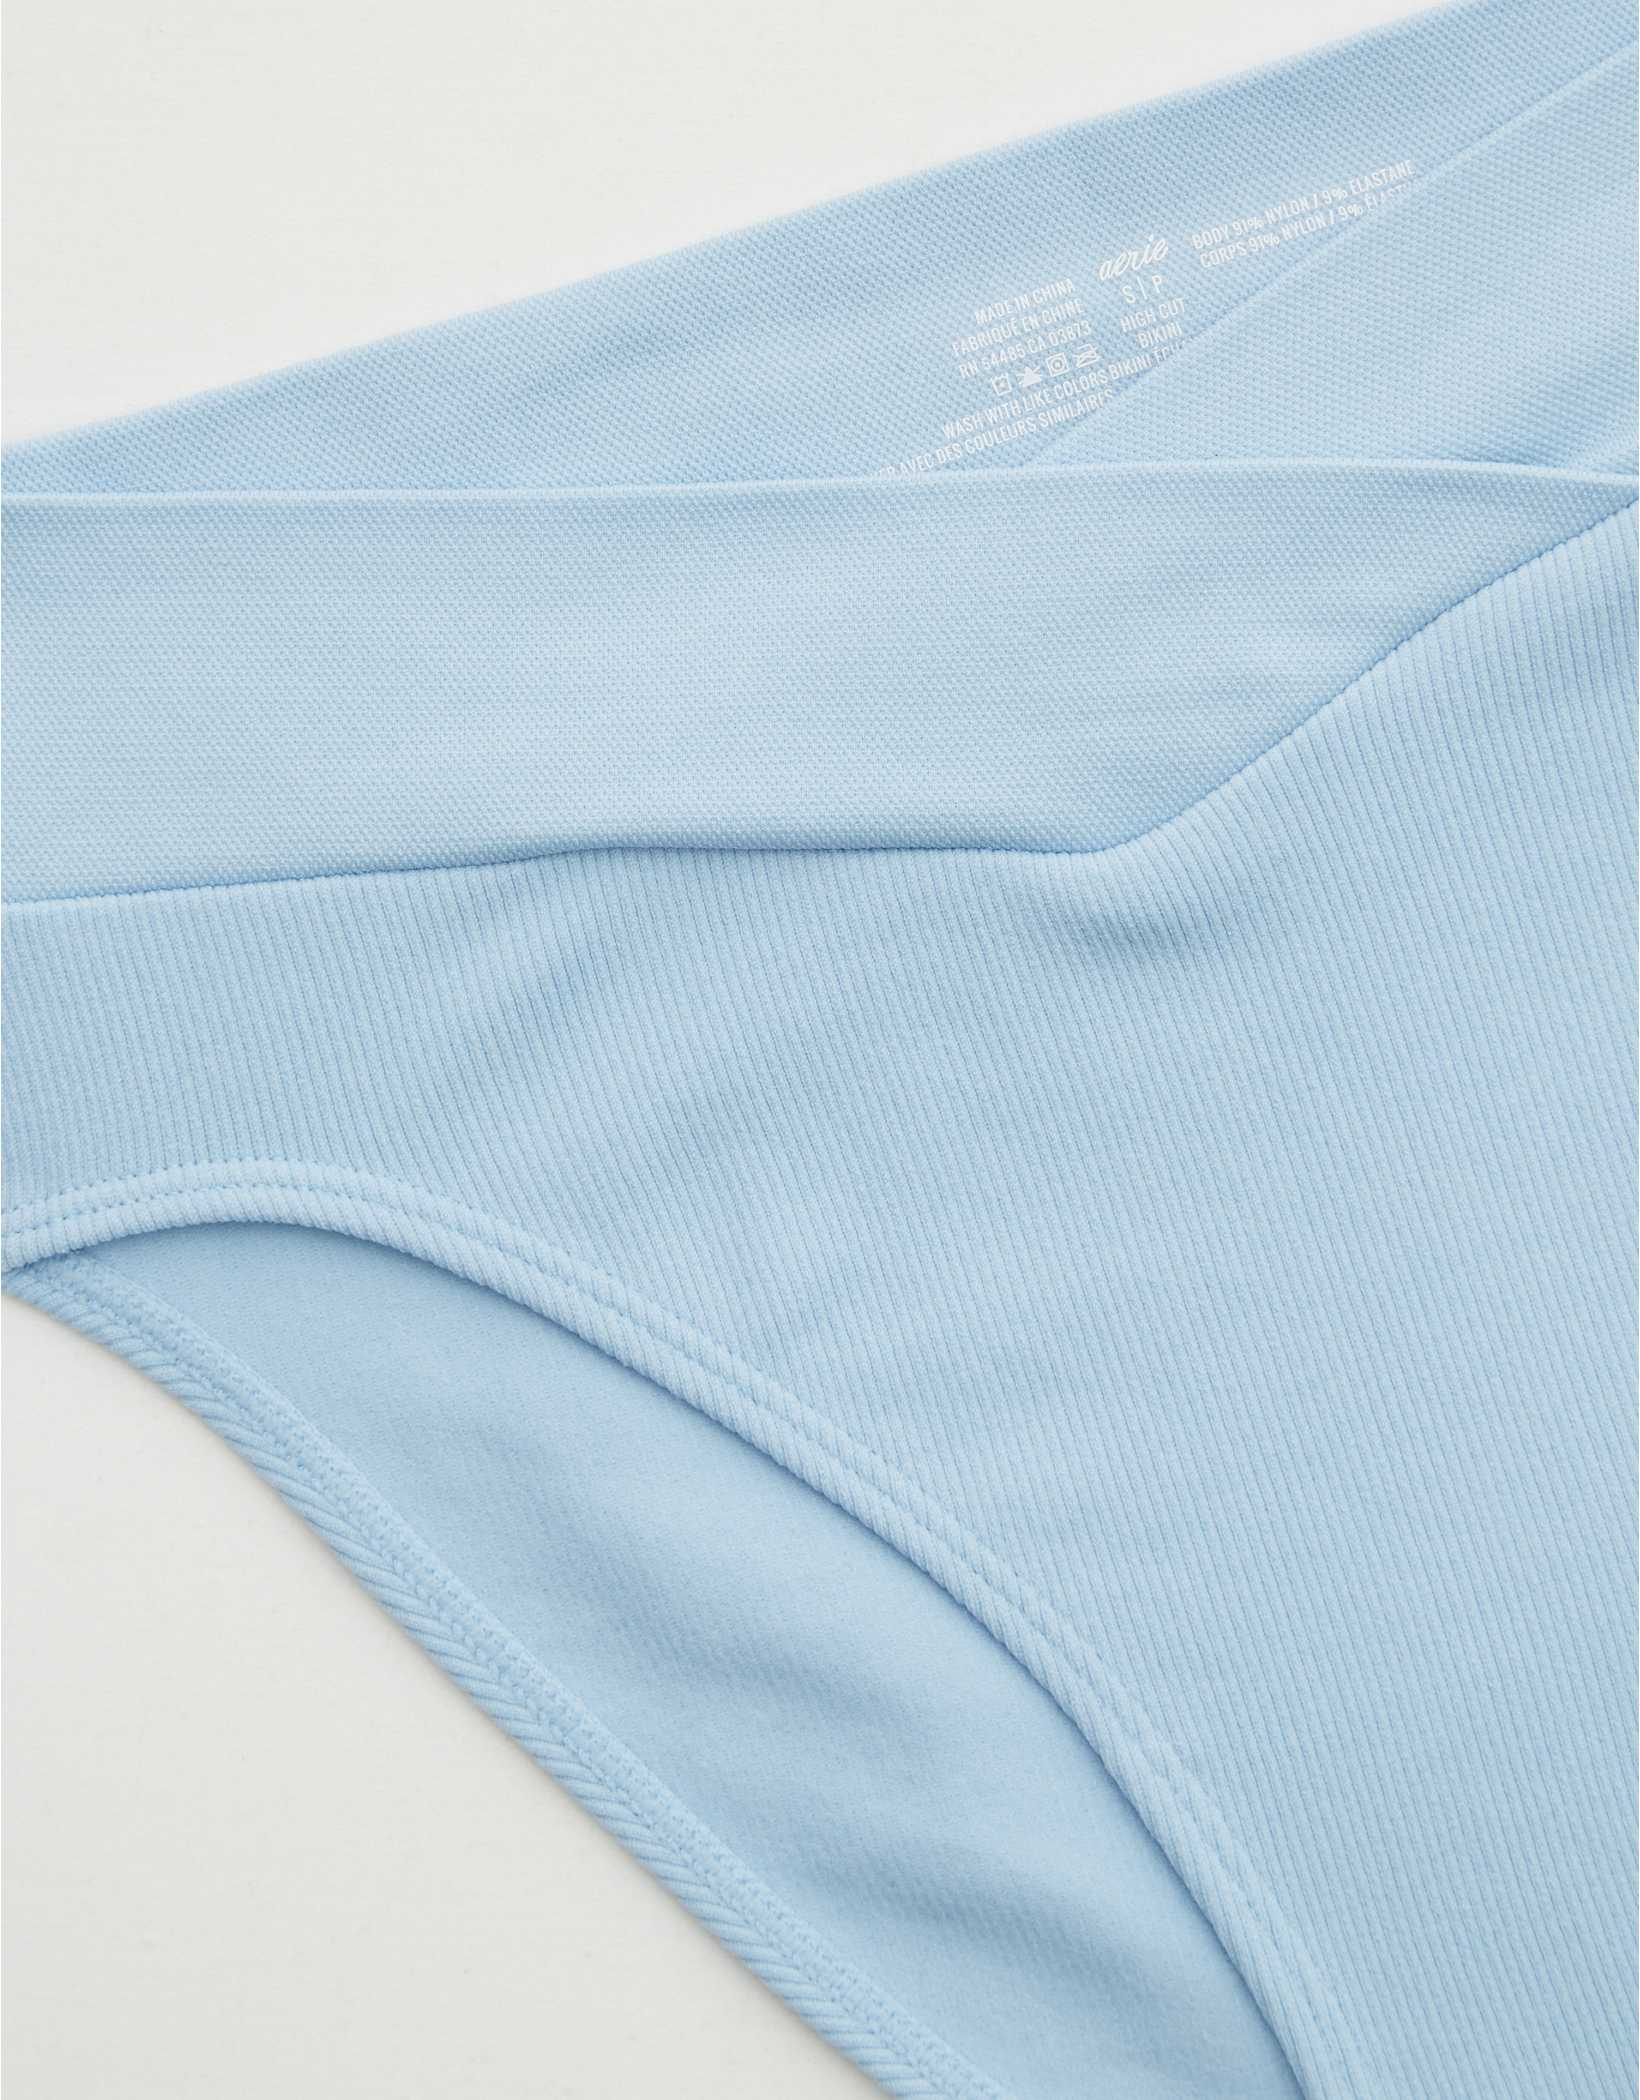 Aerie Seamless Crossover High Waisted Mom Underwear